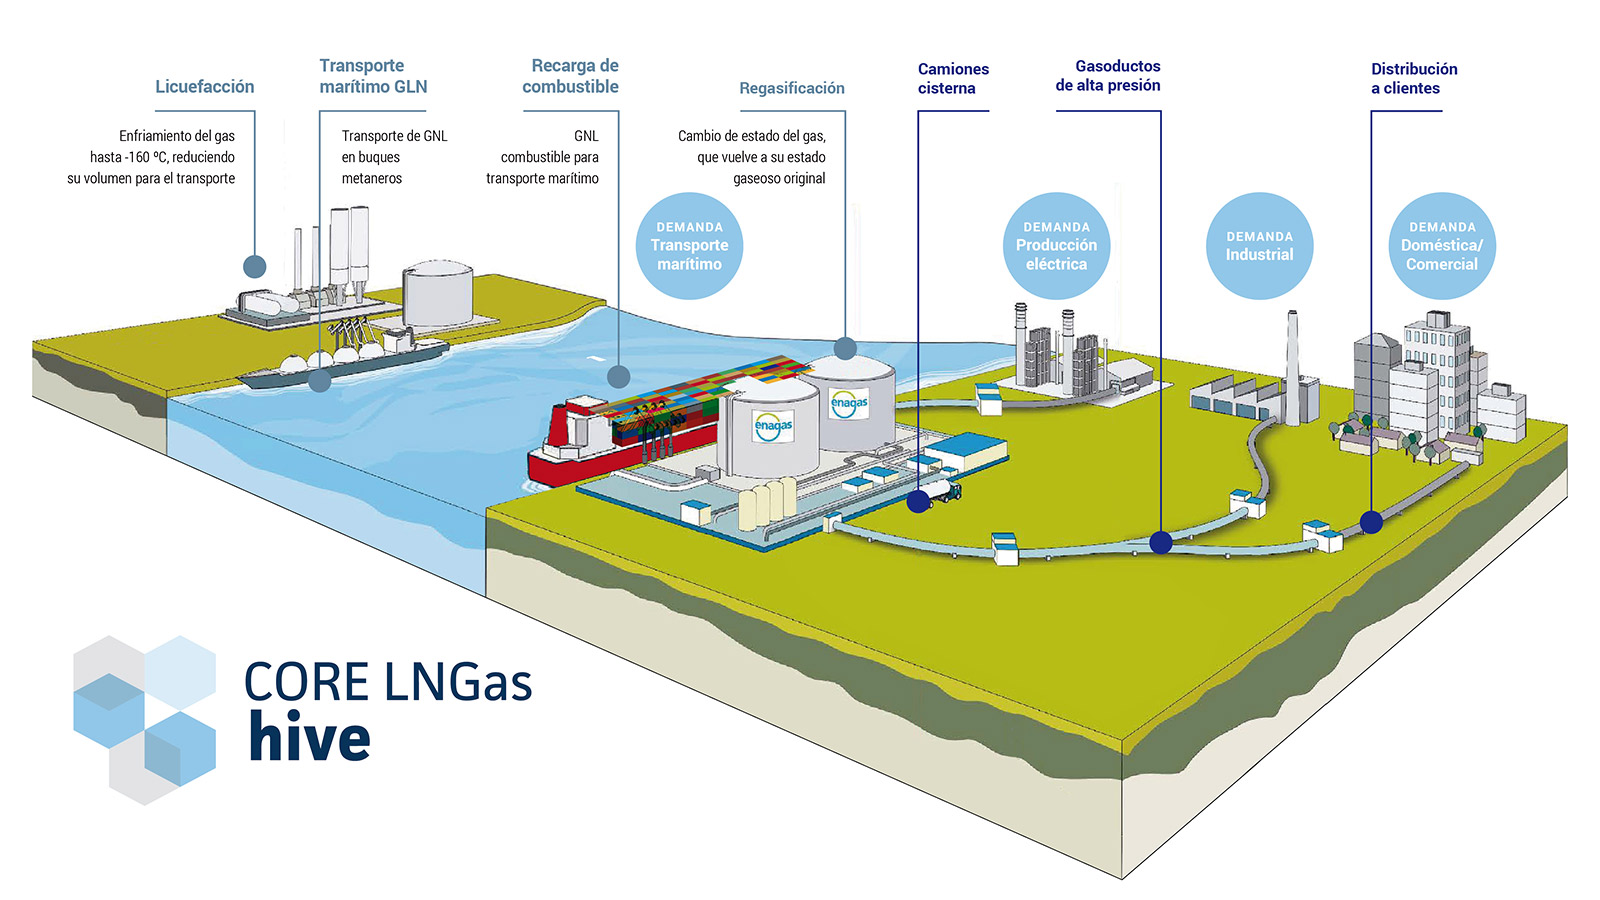 Gnl core lngas hive clean power for transport for Gas ciudad o gas natural